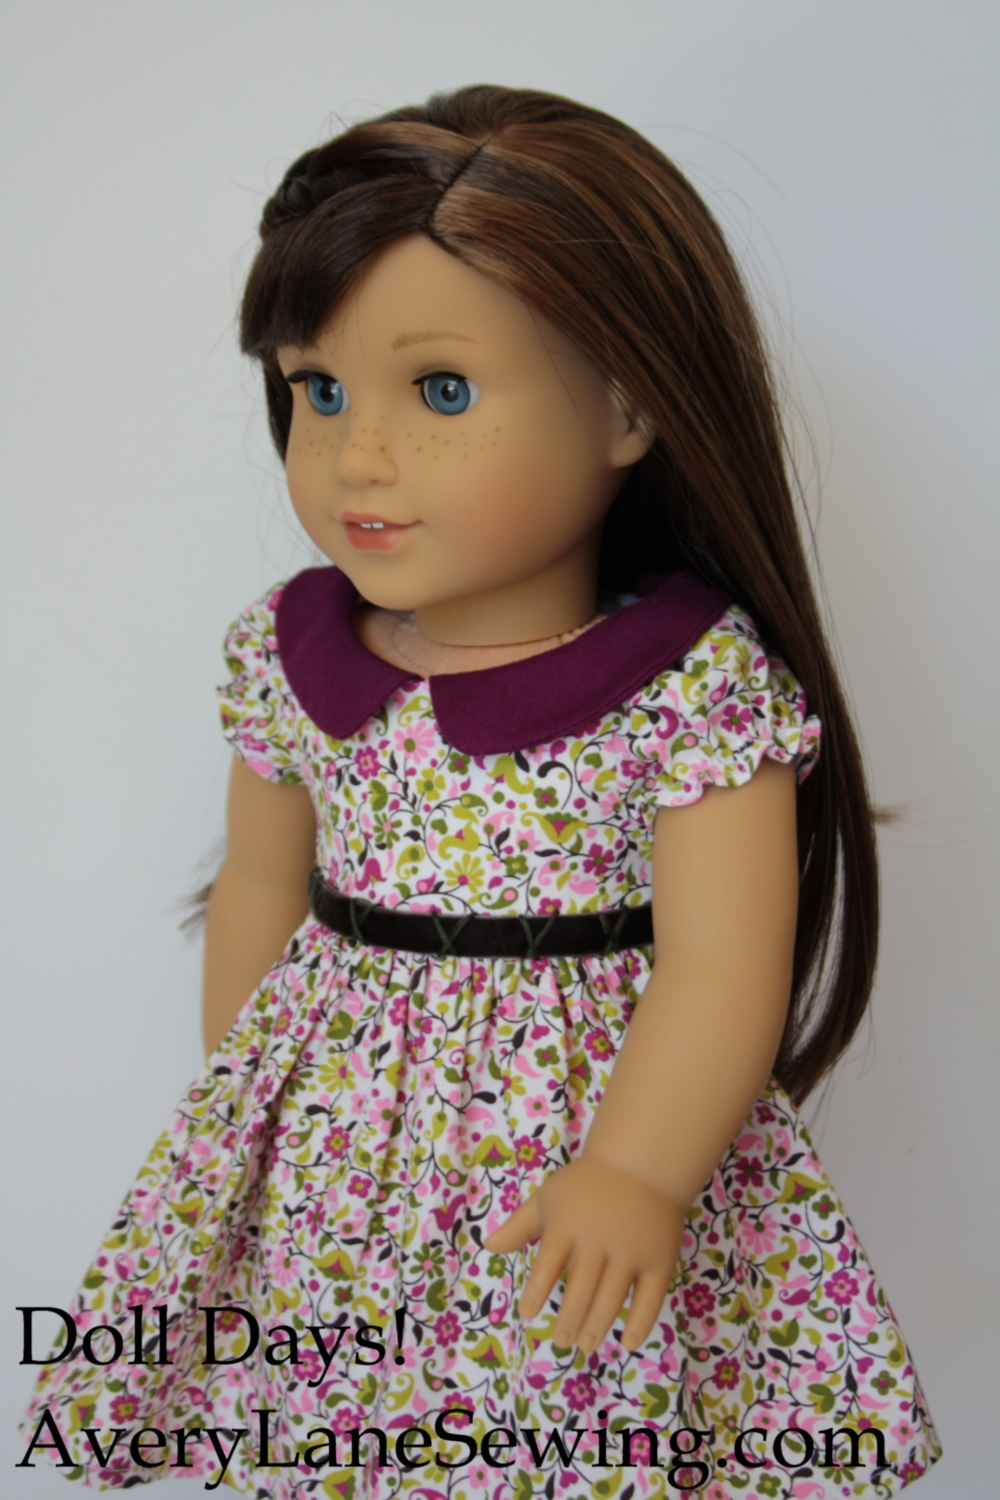 Another Sneak Peek at Doll Days!